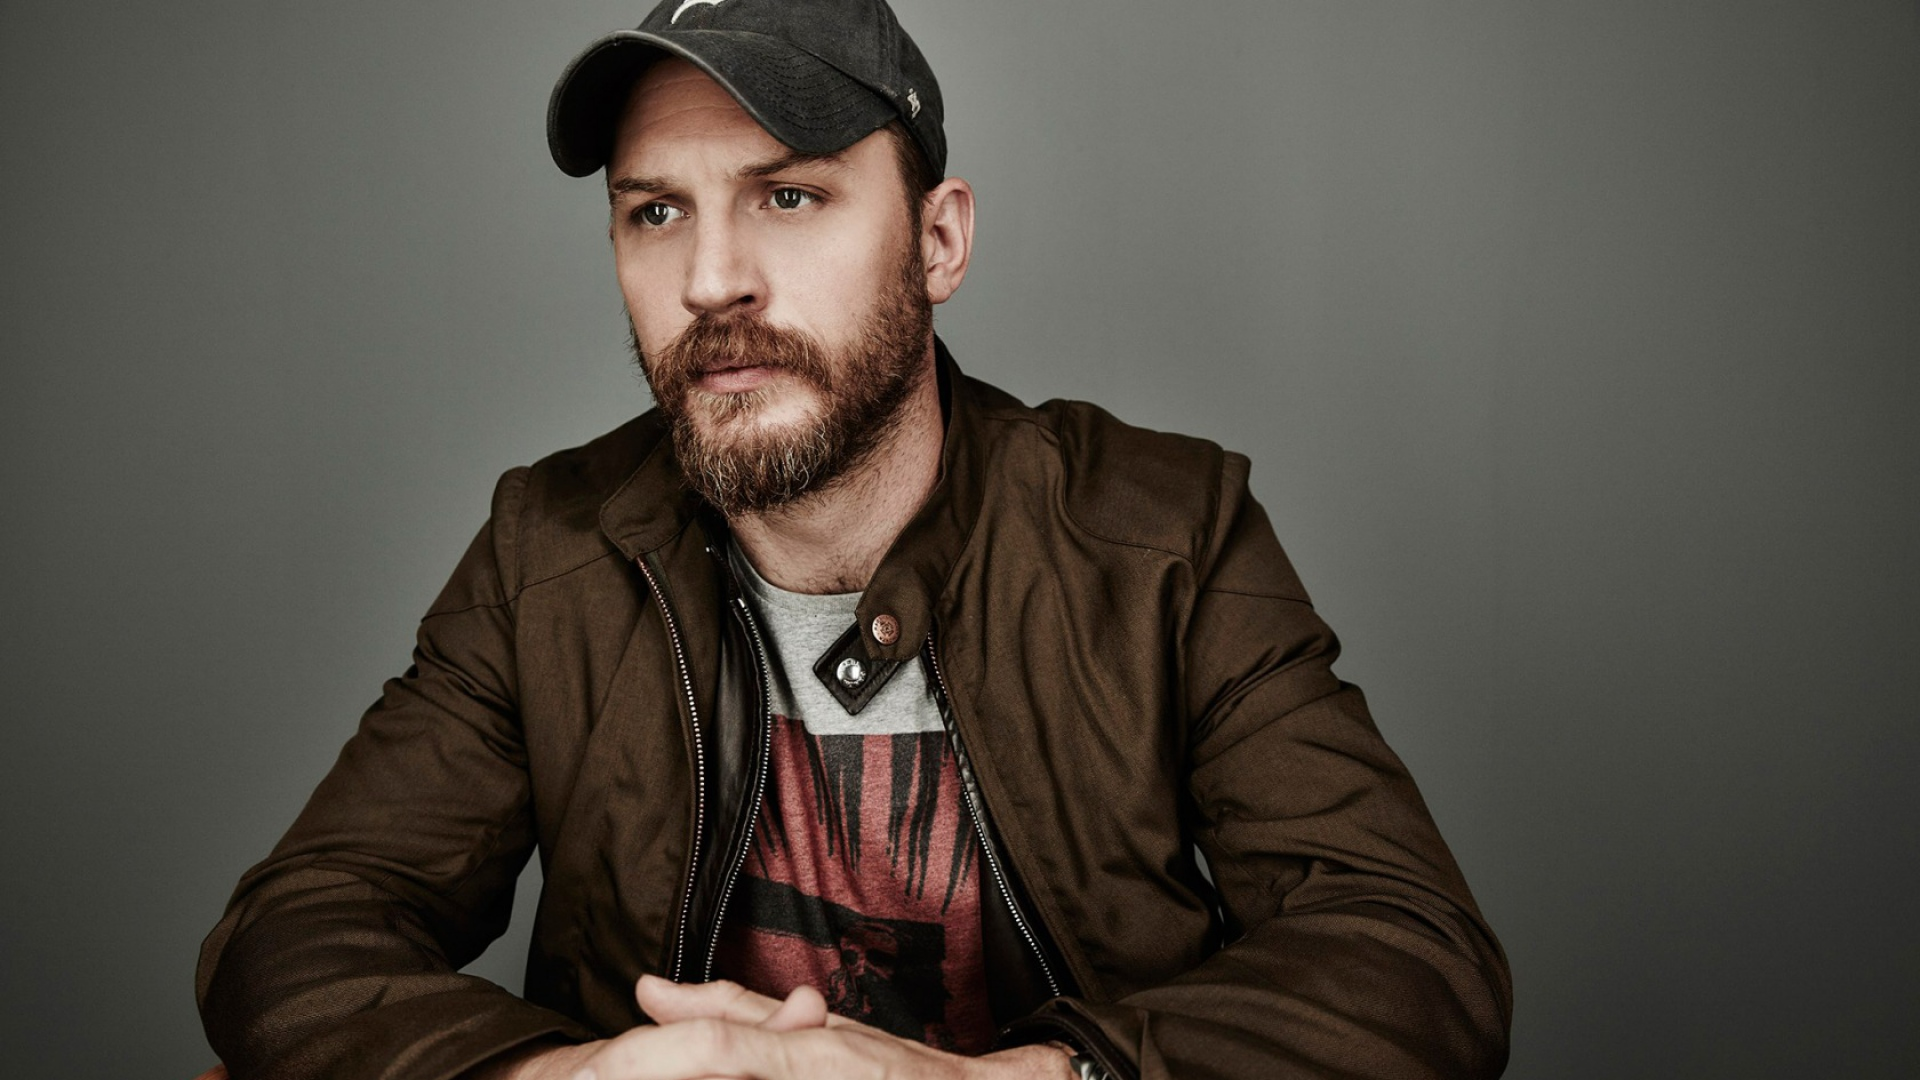 Tom Hardy Wallpaper 6   1920 X 1080 stmednet 1920x1080